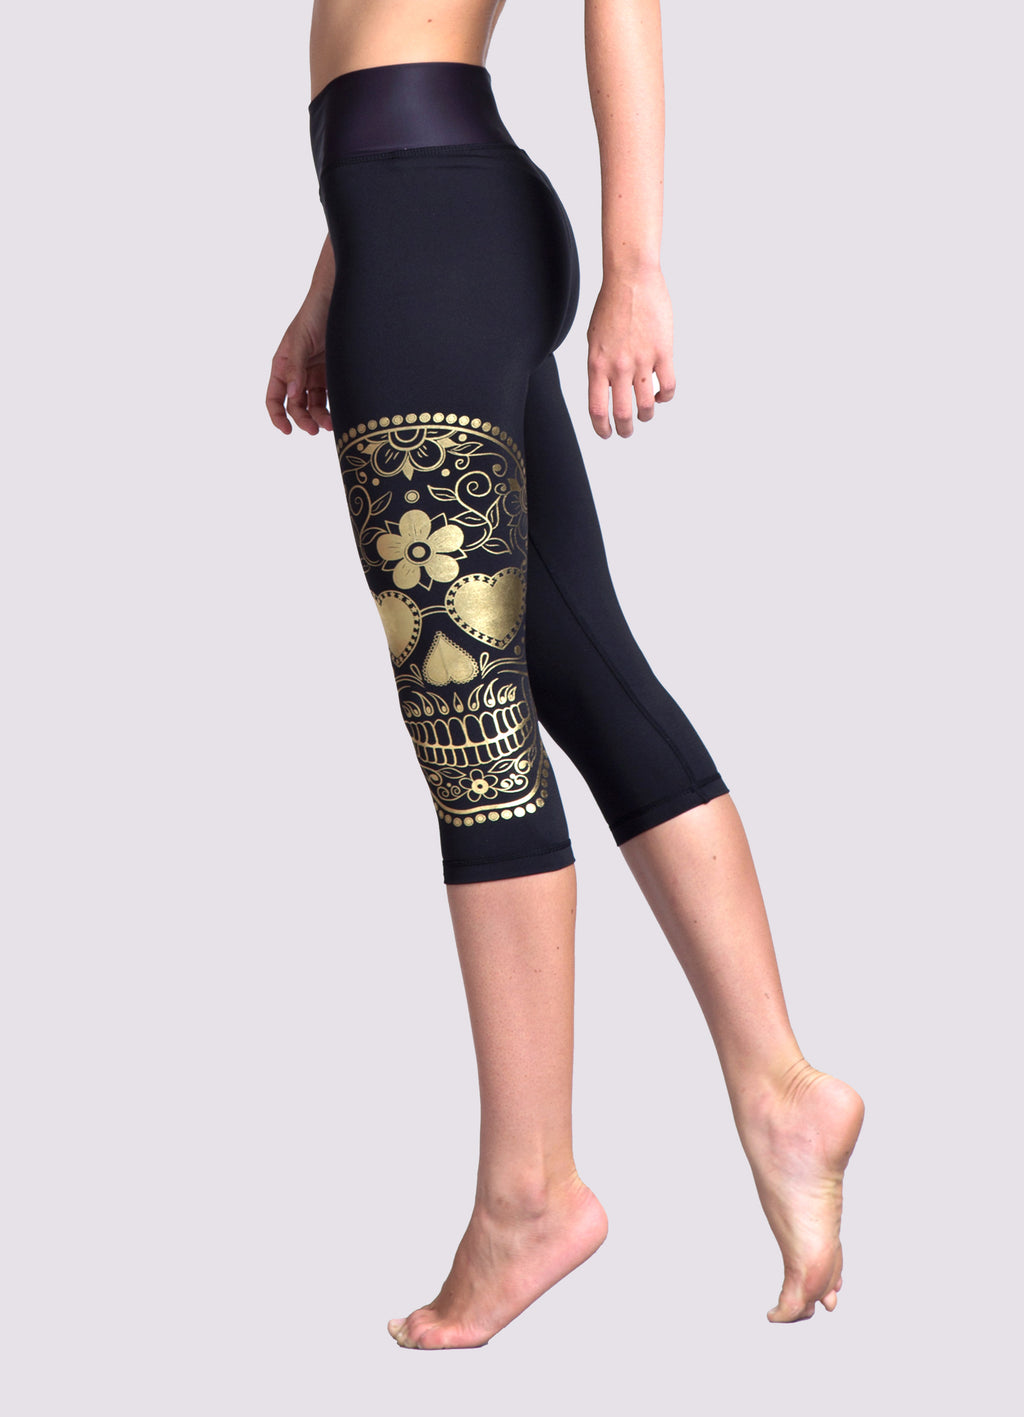 Catrina Capris Leggings - OHSOSOM | Yoga Clothing & Accessories